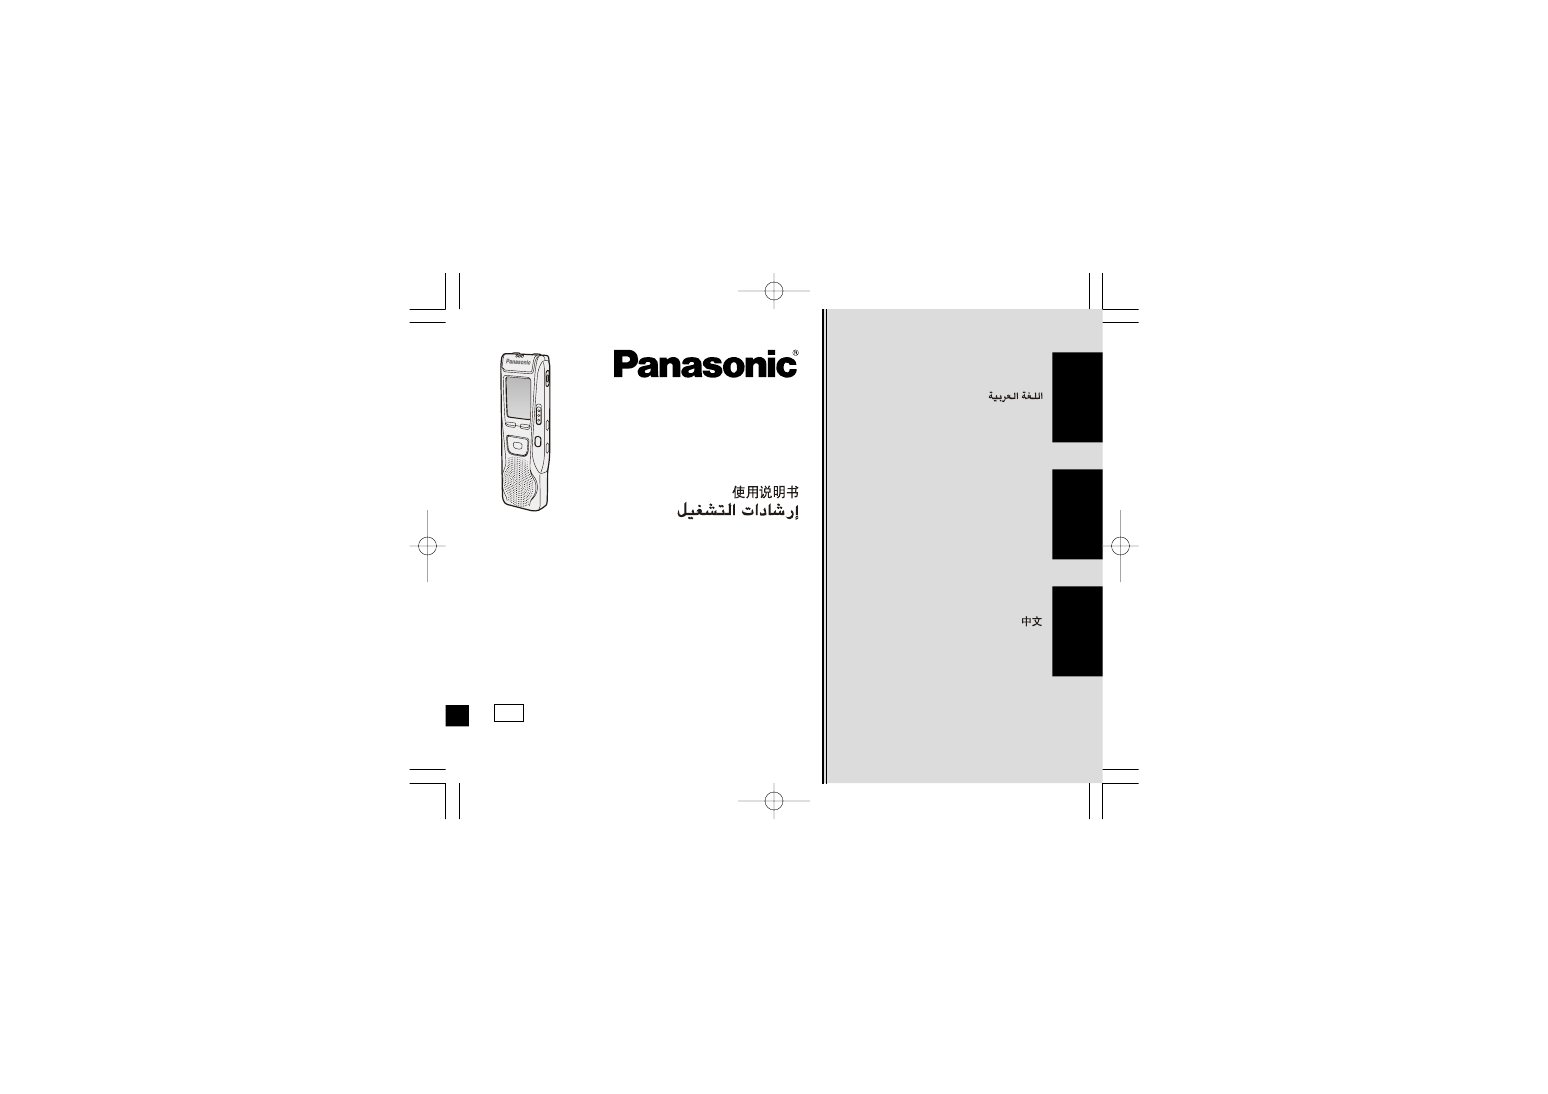 Panasonic rr-us050